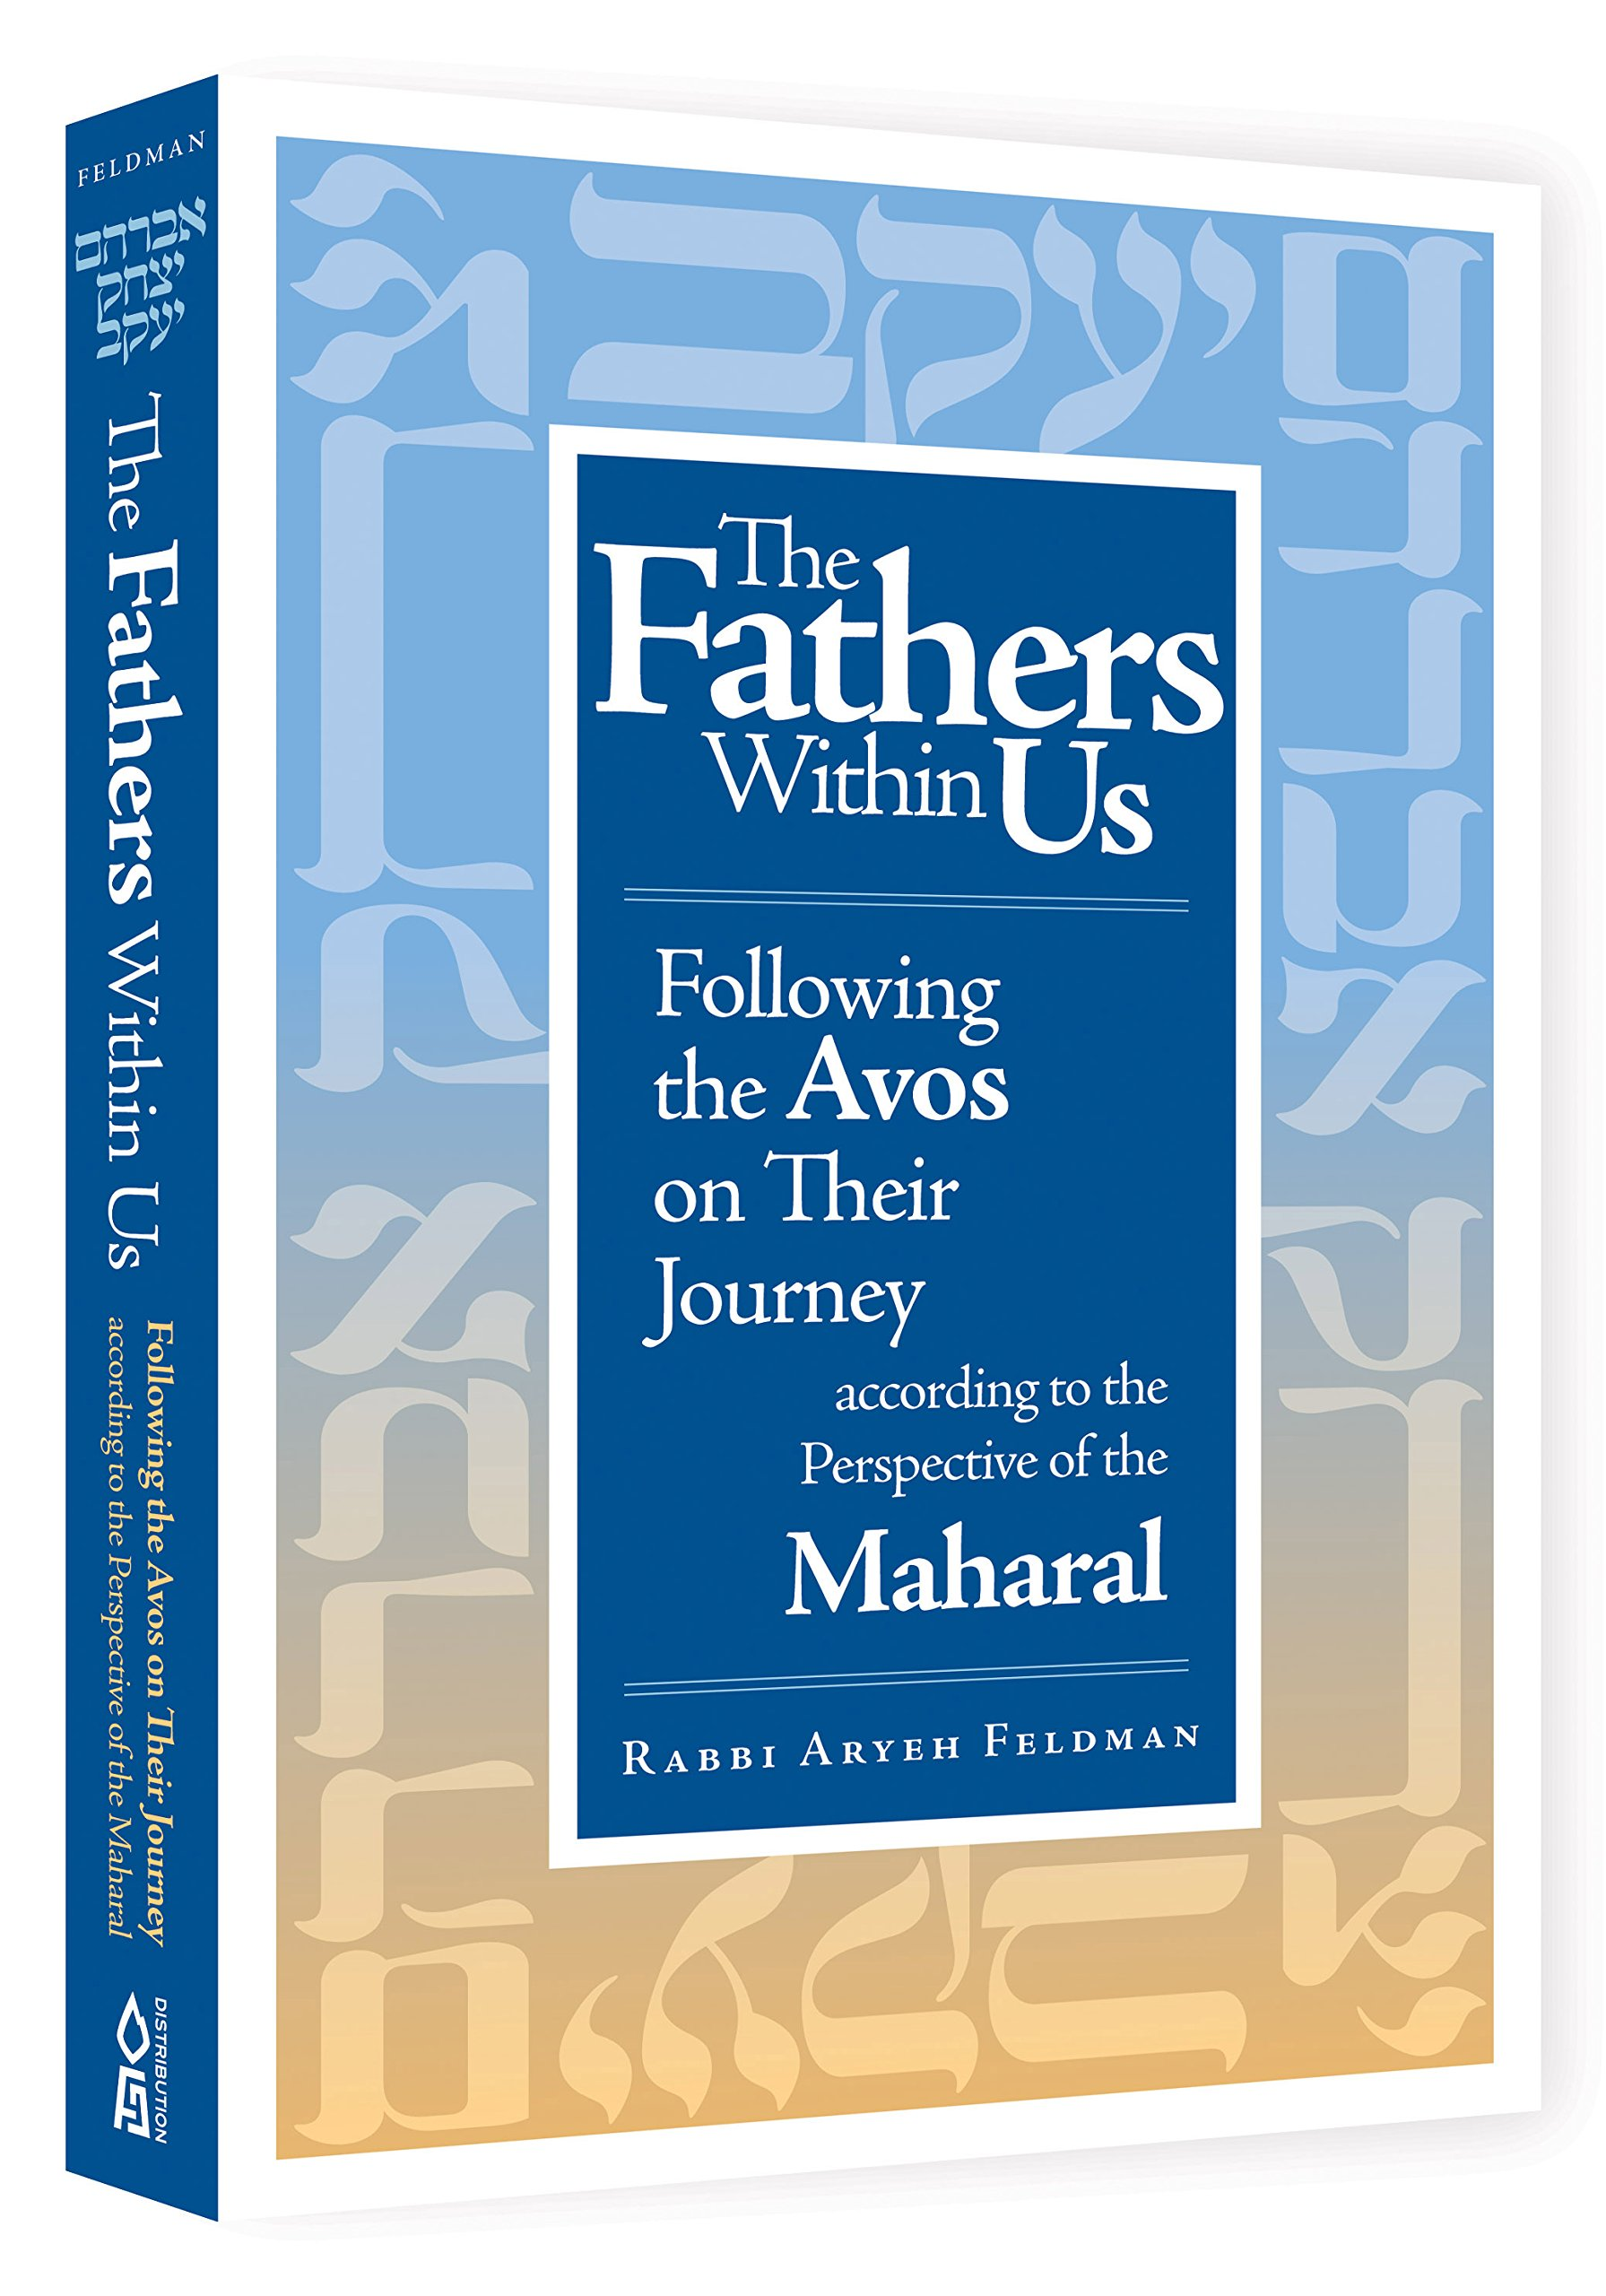 Download The Fathers Within Us: Following the Avos on their Journey According to the Perspective of the Maharal ebook